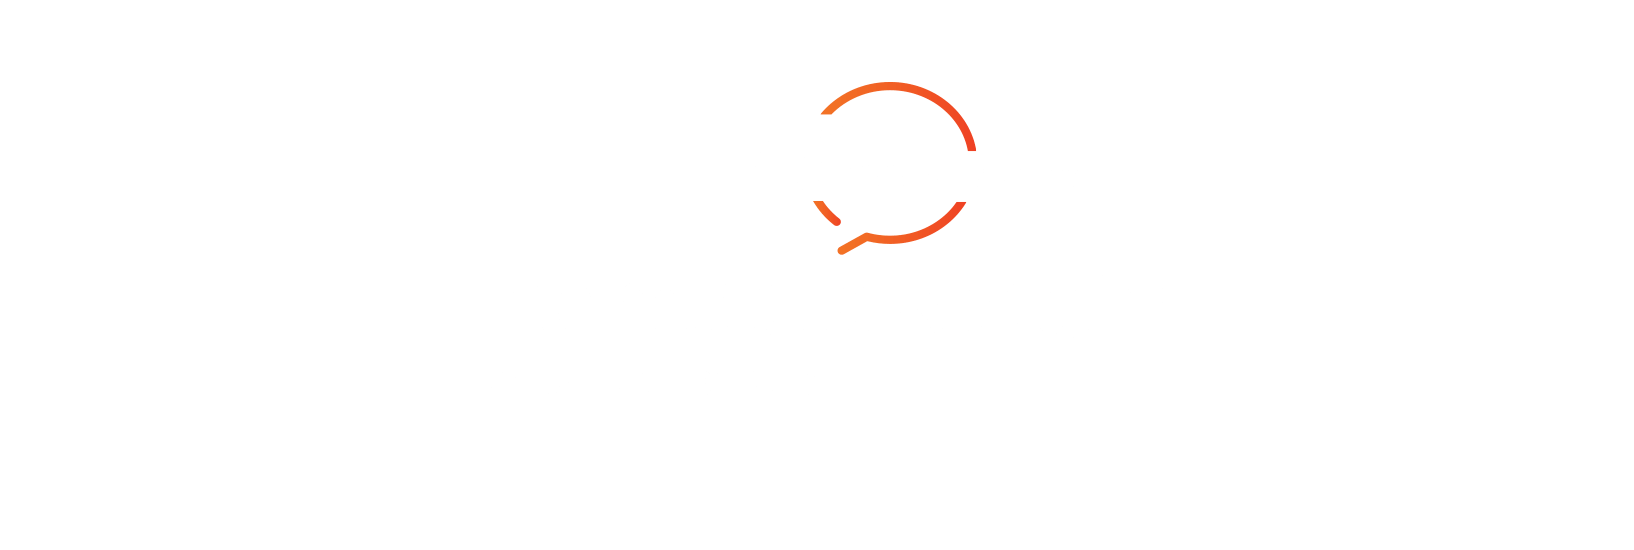 The Media Society Annual Award 2017